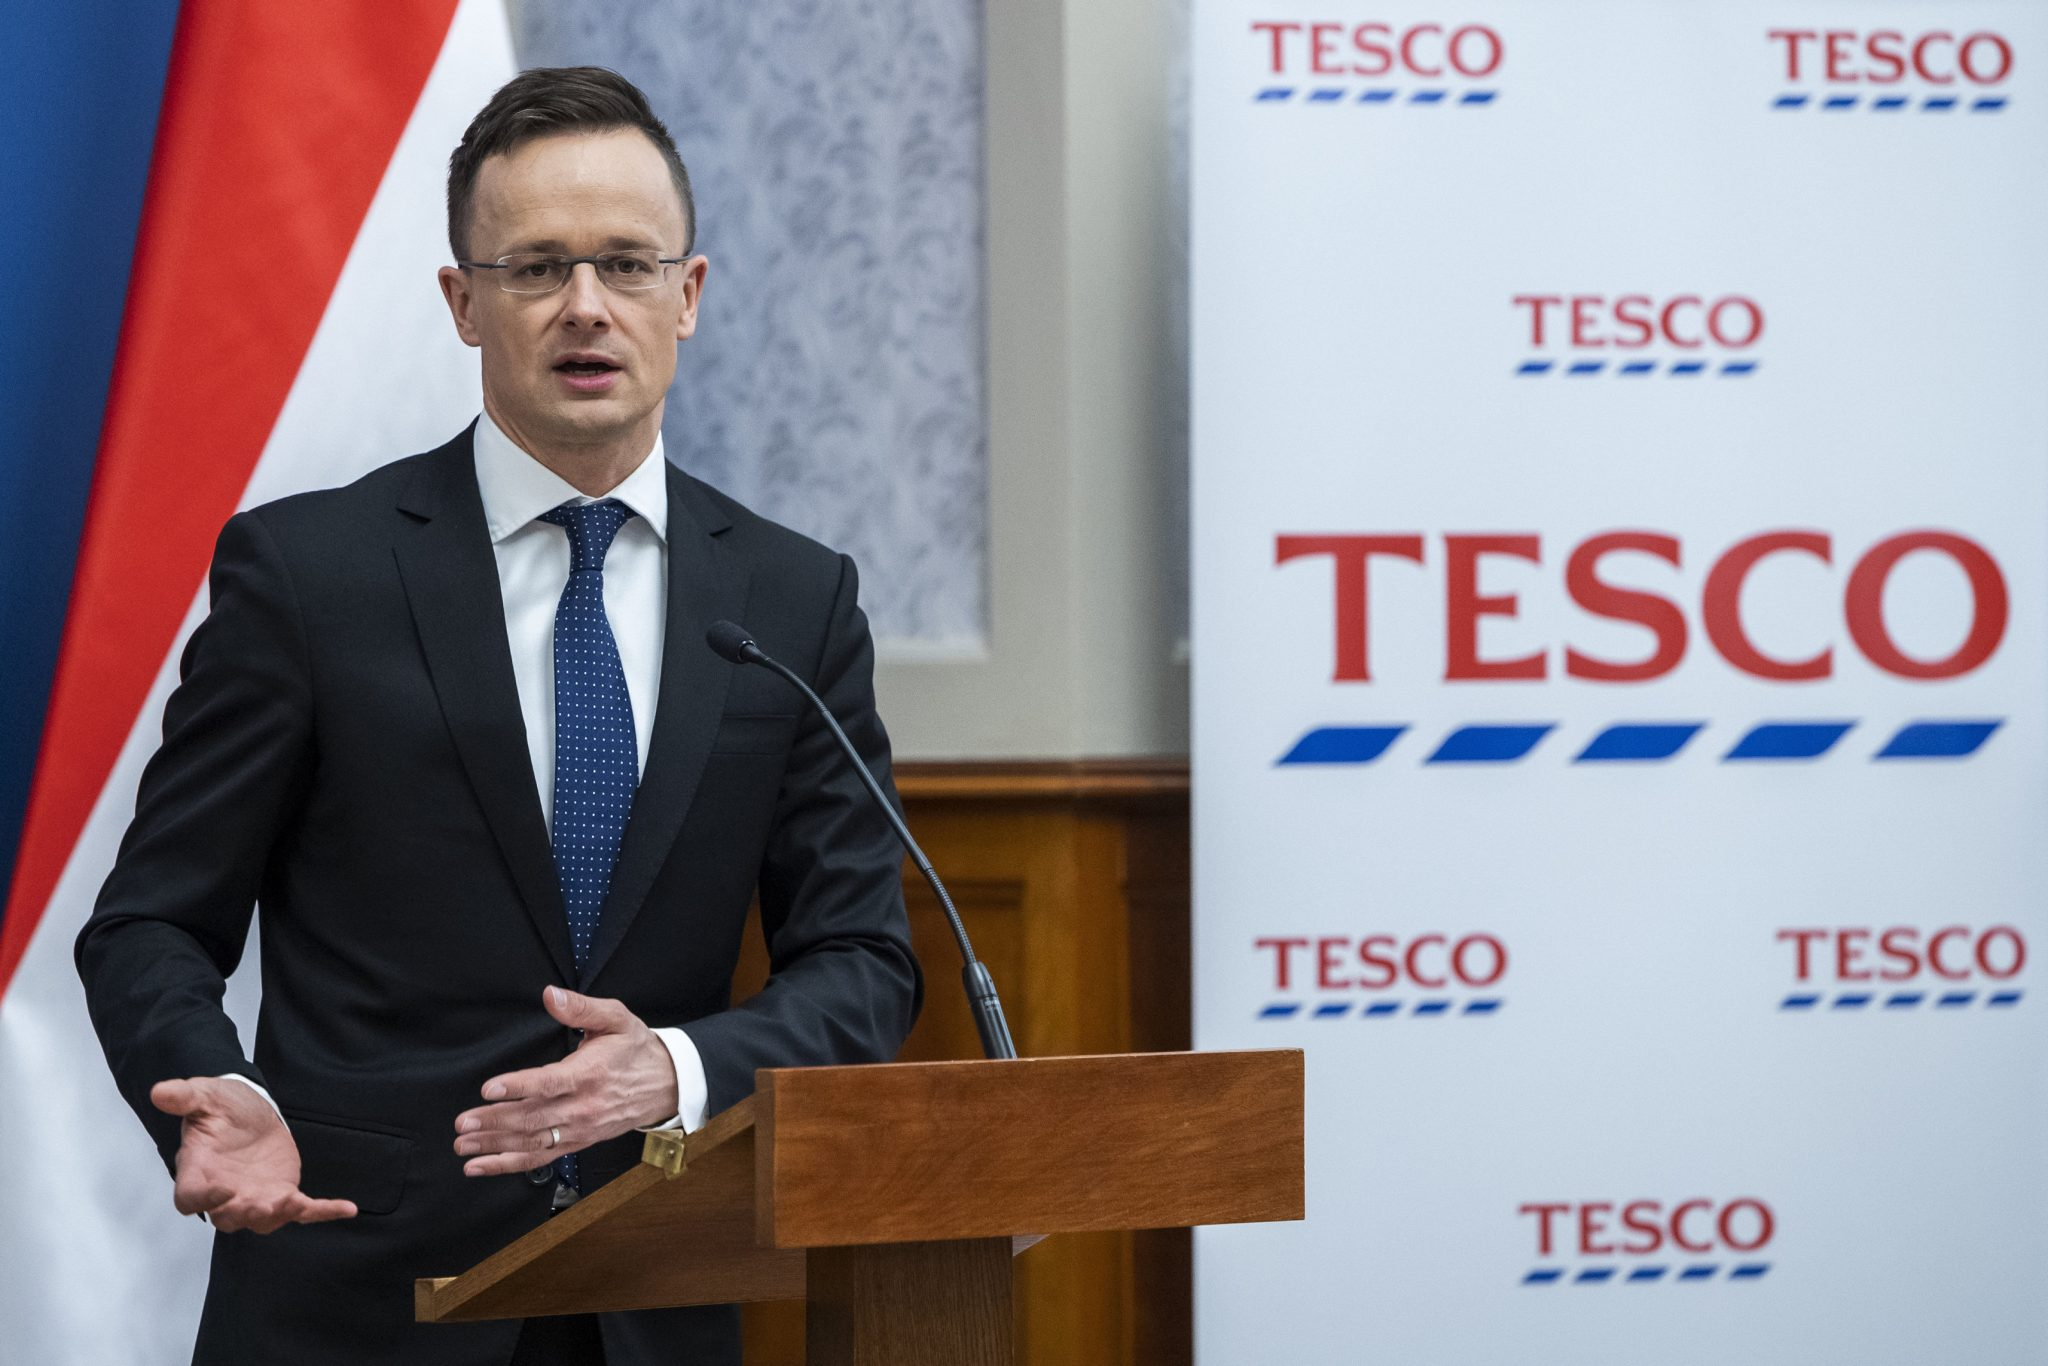 Tesco Group to Open Business, Technology Services Centre in Budapest post's picture